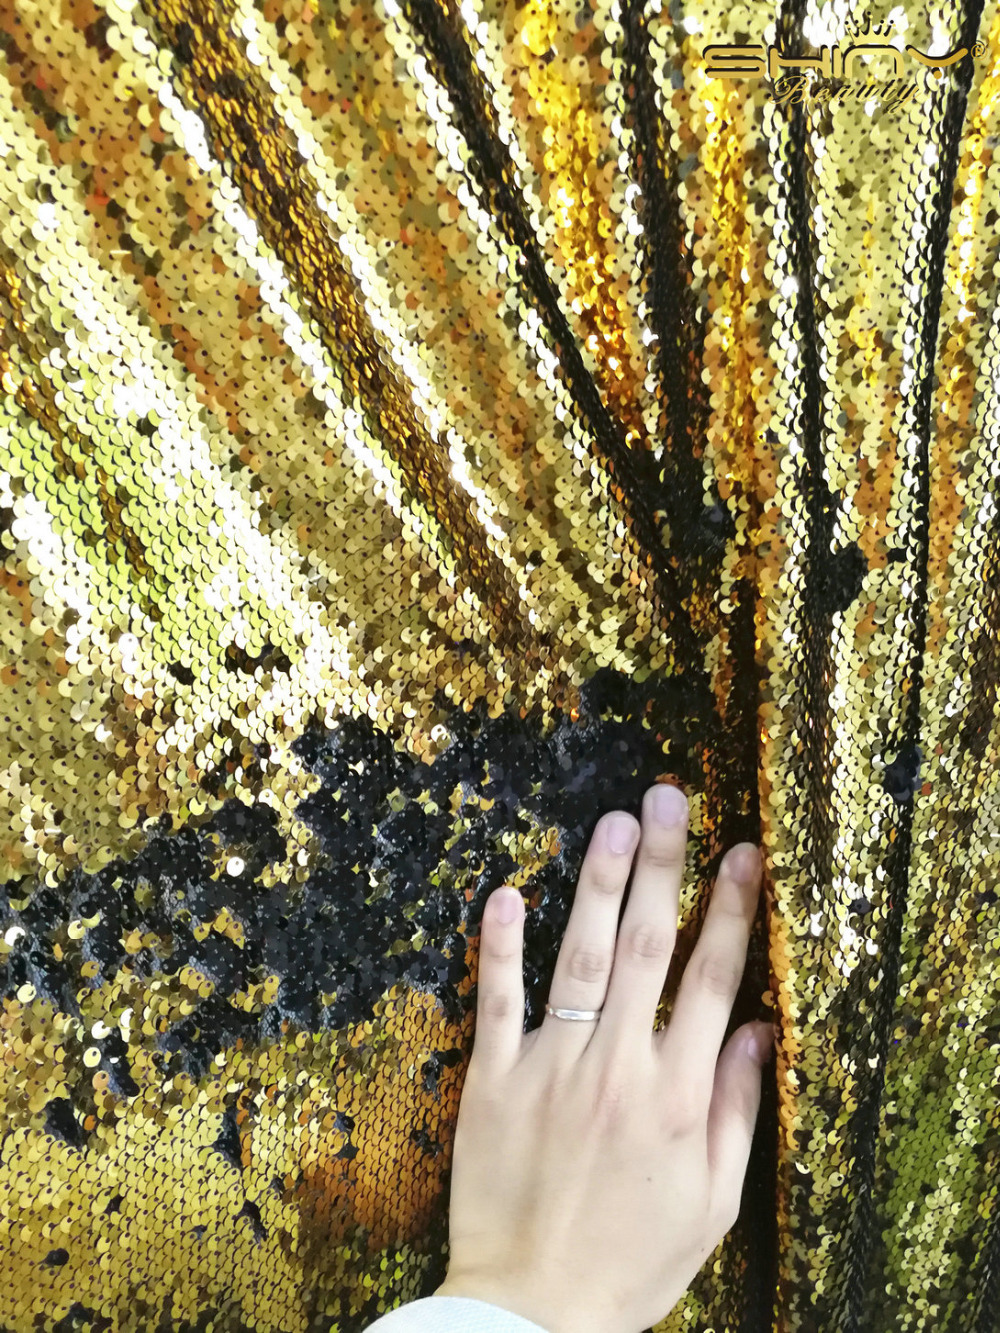 Shinybeauty Reversible Gold and Black Sequin Backdrop Curtain-9ft x 9ft, Mermaid Fish Scale Sequin Photography for Decoration-rShinybeauty Reversible Gold and Black Sequin Backdrop Curtain-9ft x 9ft, Mermaid Fish Scale Sequin Photography for Decoration-r